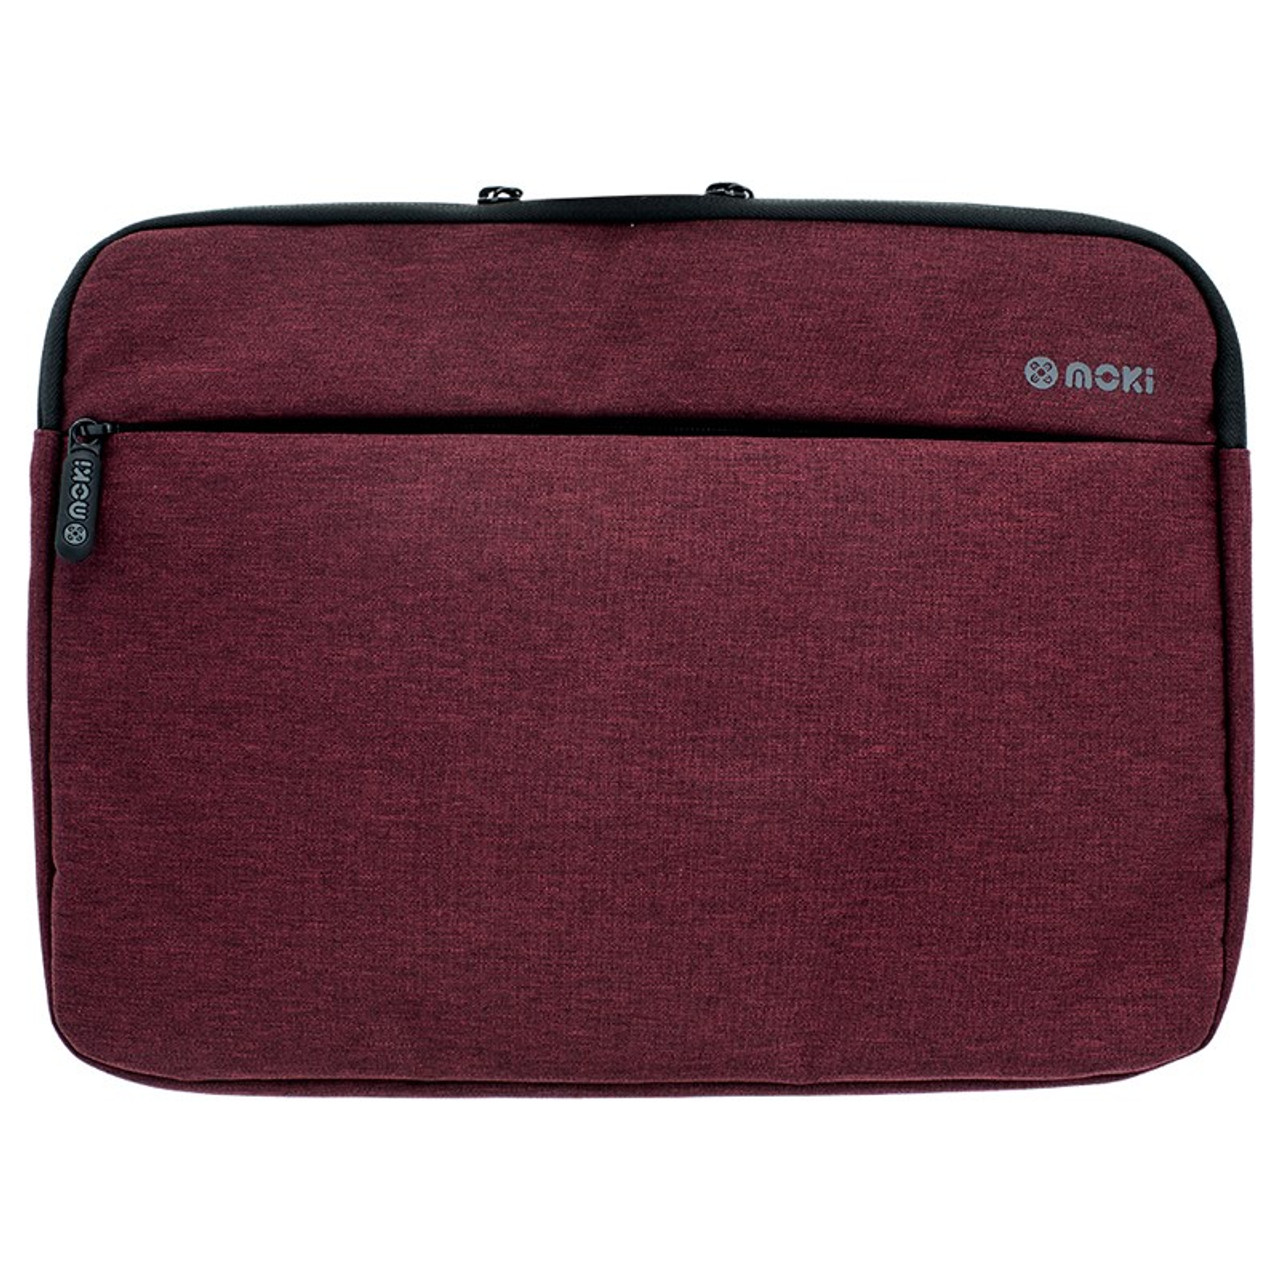 Image for Moki 13.3in Notebook Transporter Sleeve - Burgundy CX Computer Superstore